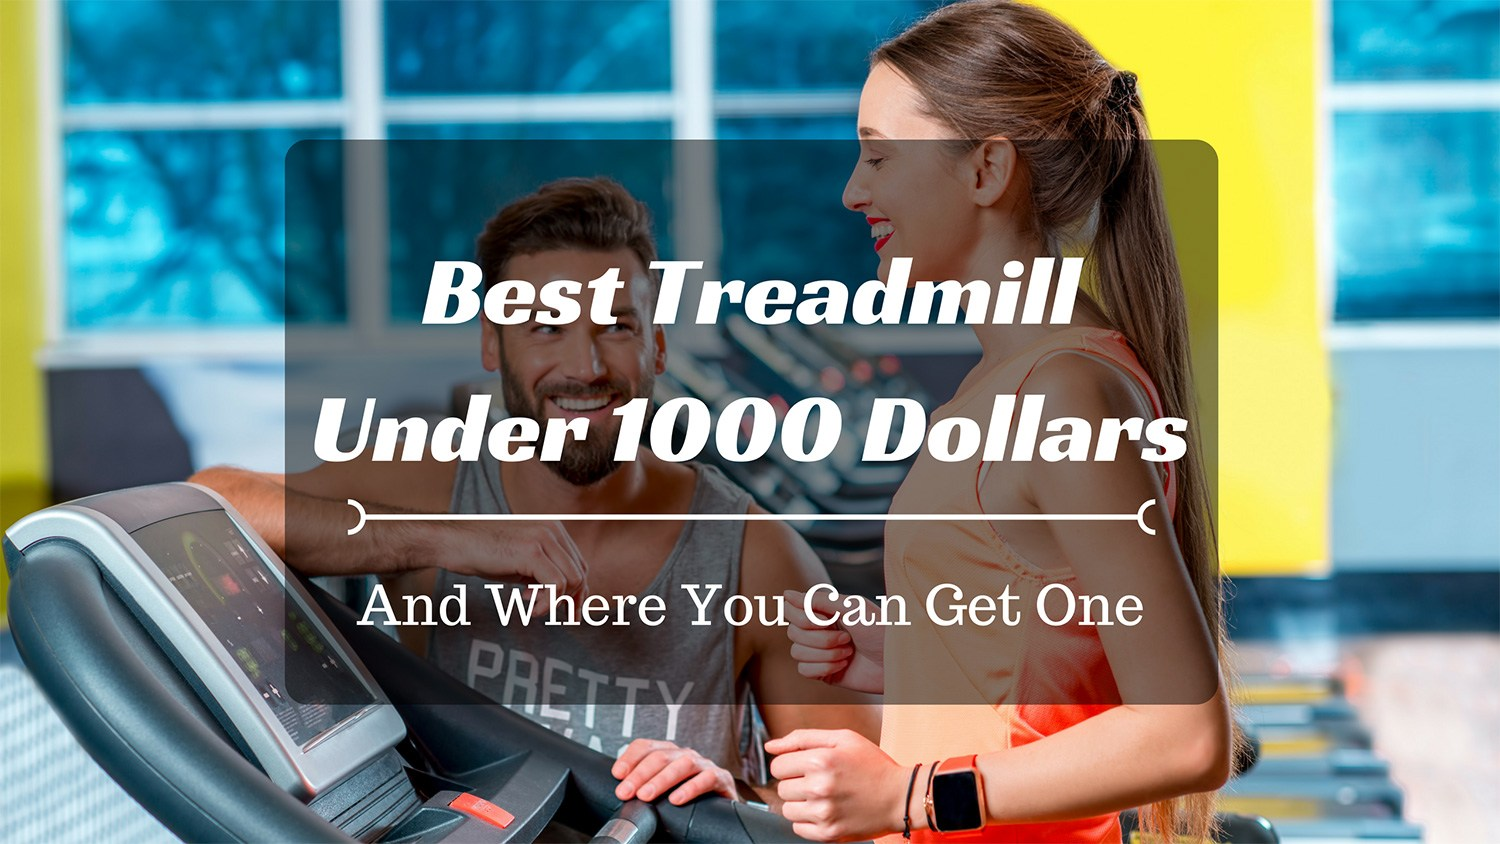 best treadmill under 1000 Best Treadmill Under 1000 Dollars